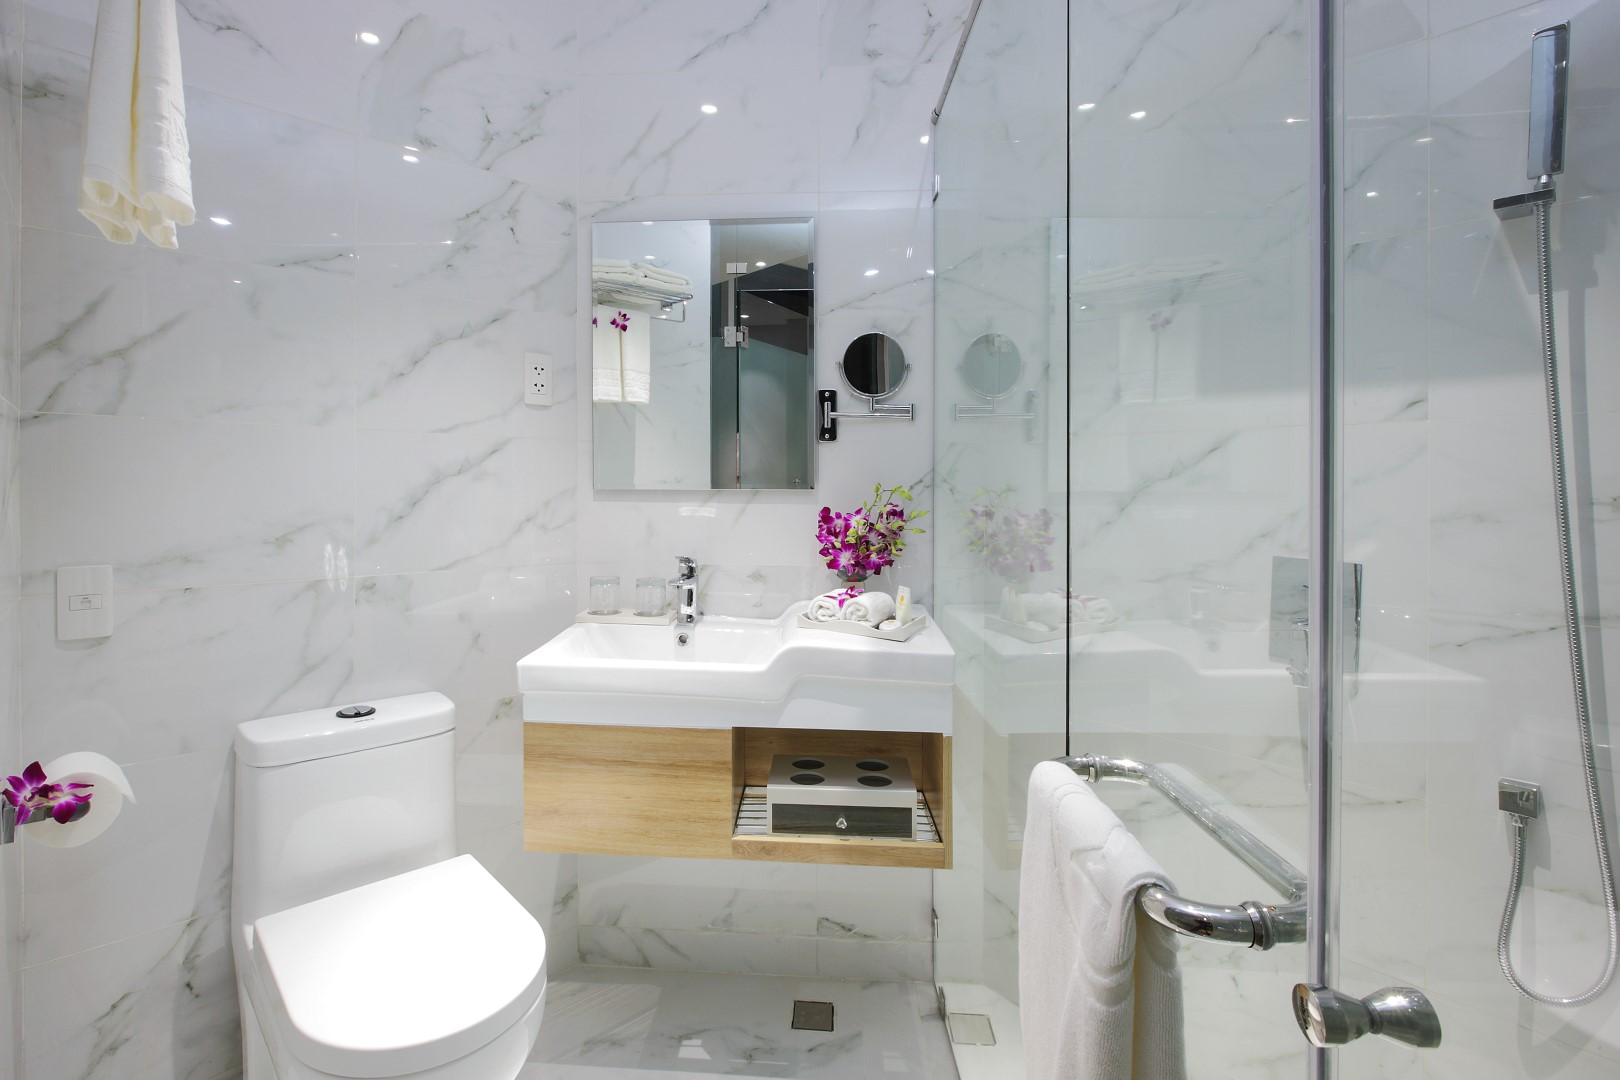 Image from Millennium Boutique Hotel